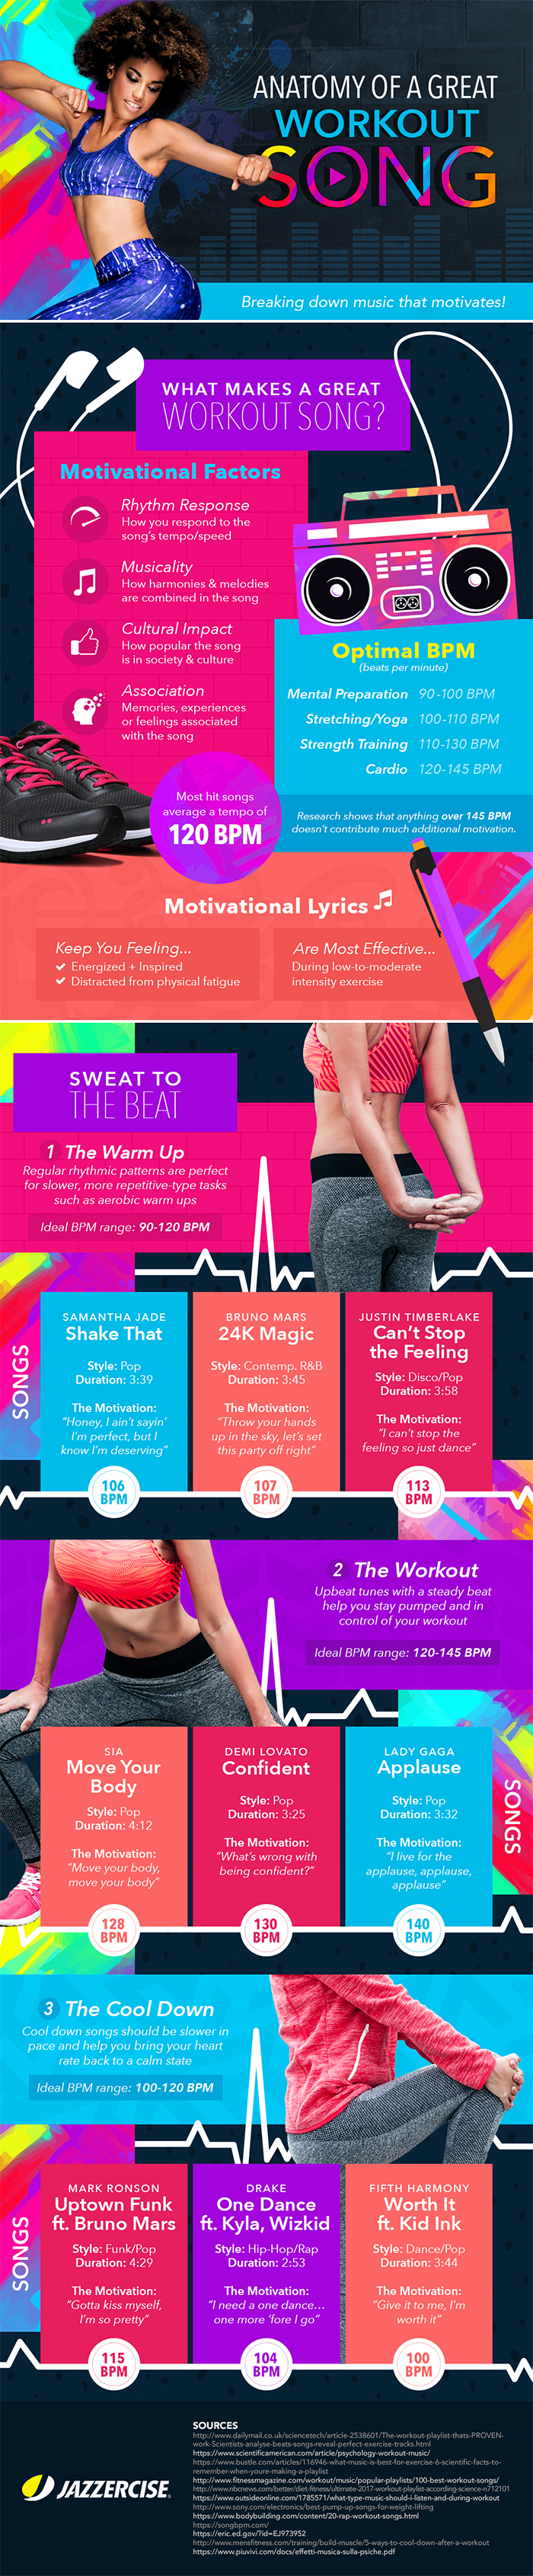 Anatomy of a Great Workout Song